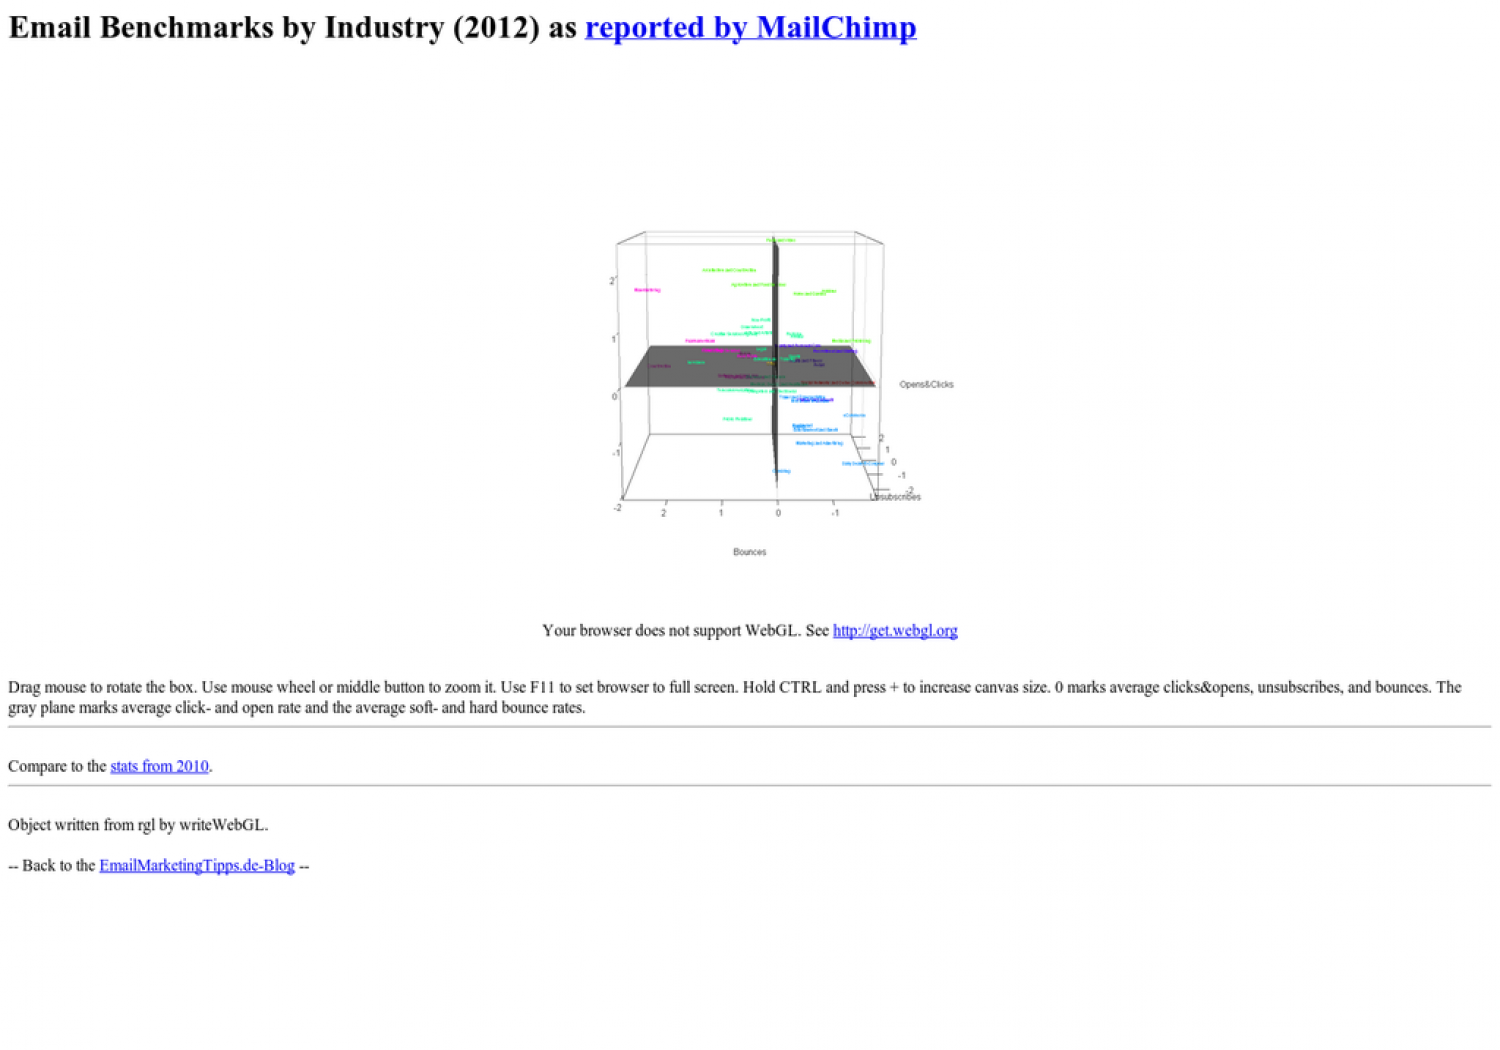 Email Marketing Benchmarks by Industry in 3D, 2012 Infographic